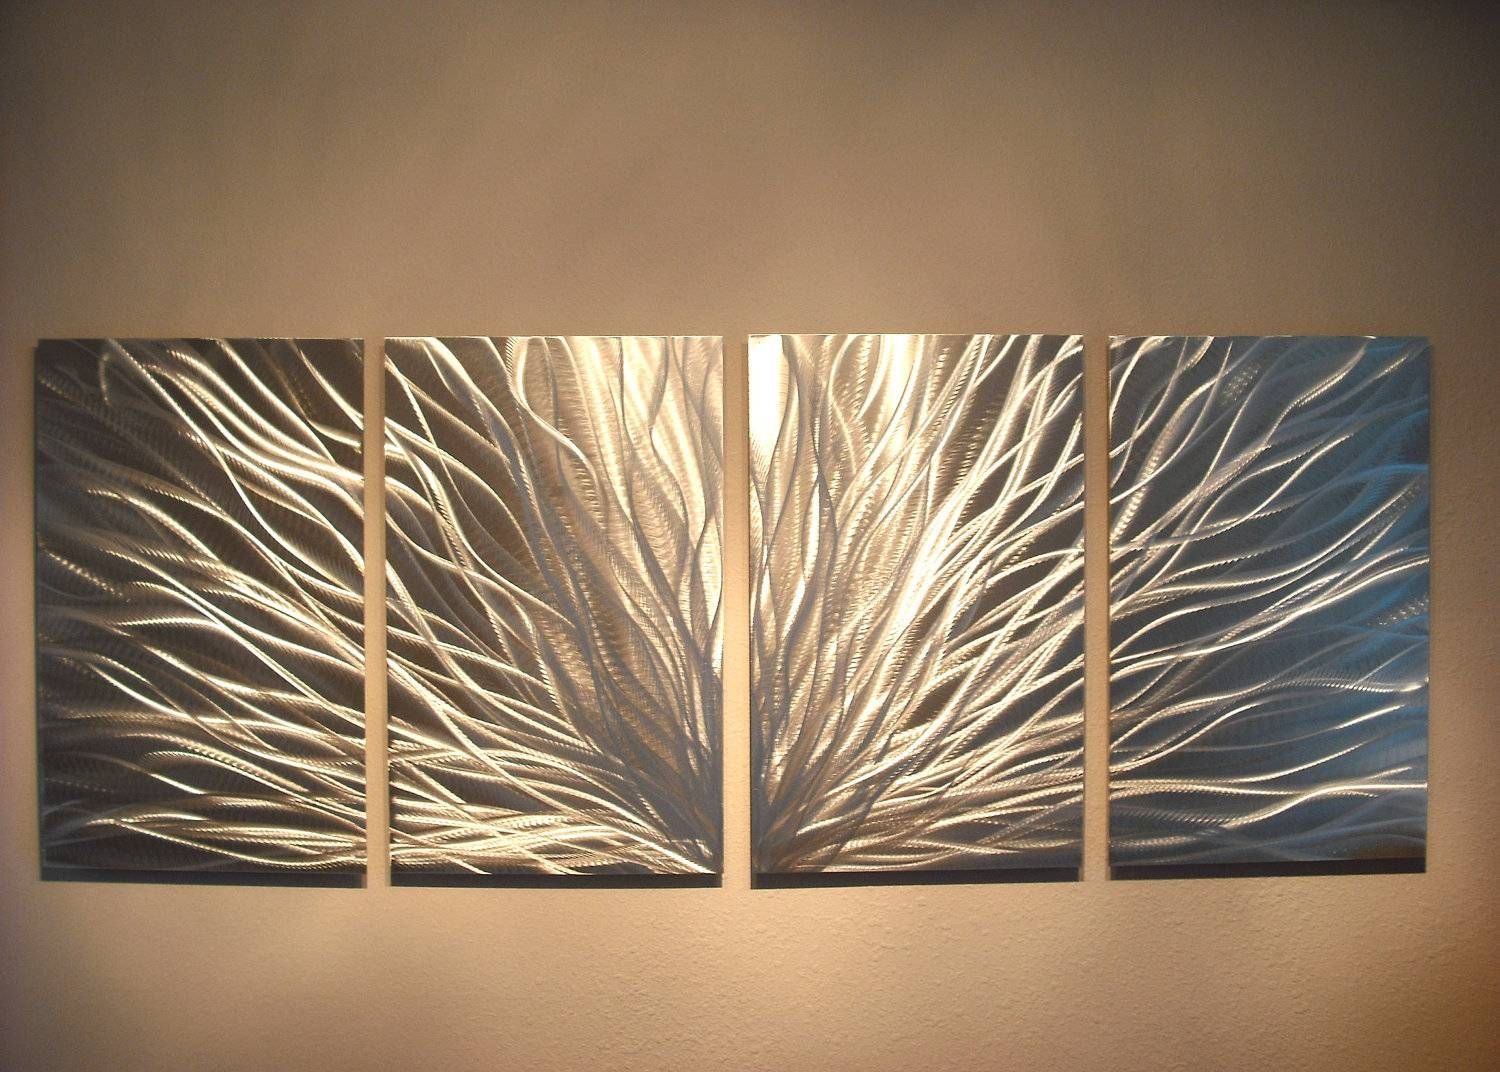 Radiance – Abstract Metal Wall Art Contemporary Modern Decor Regarding 2018 Abstract Metal Wall Art (View 15 of 20)